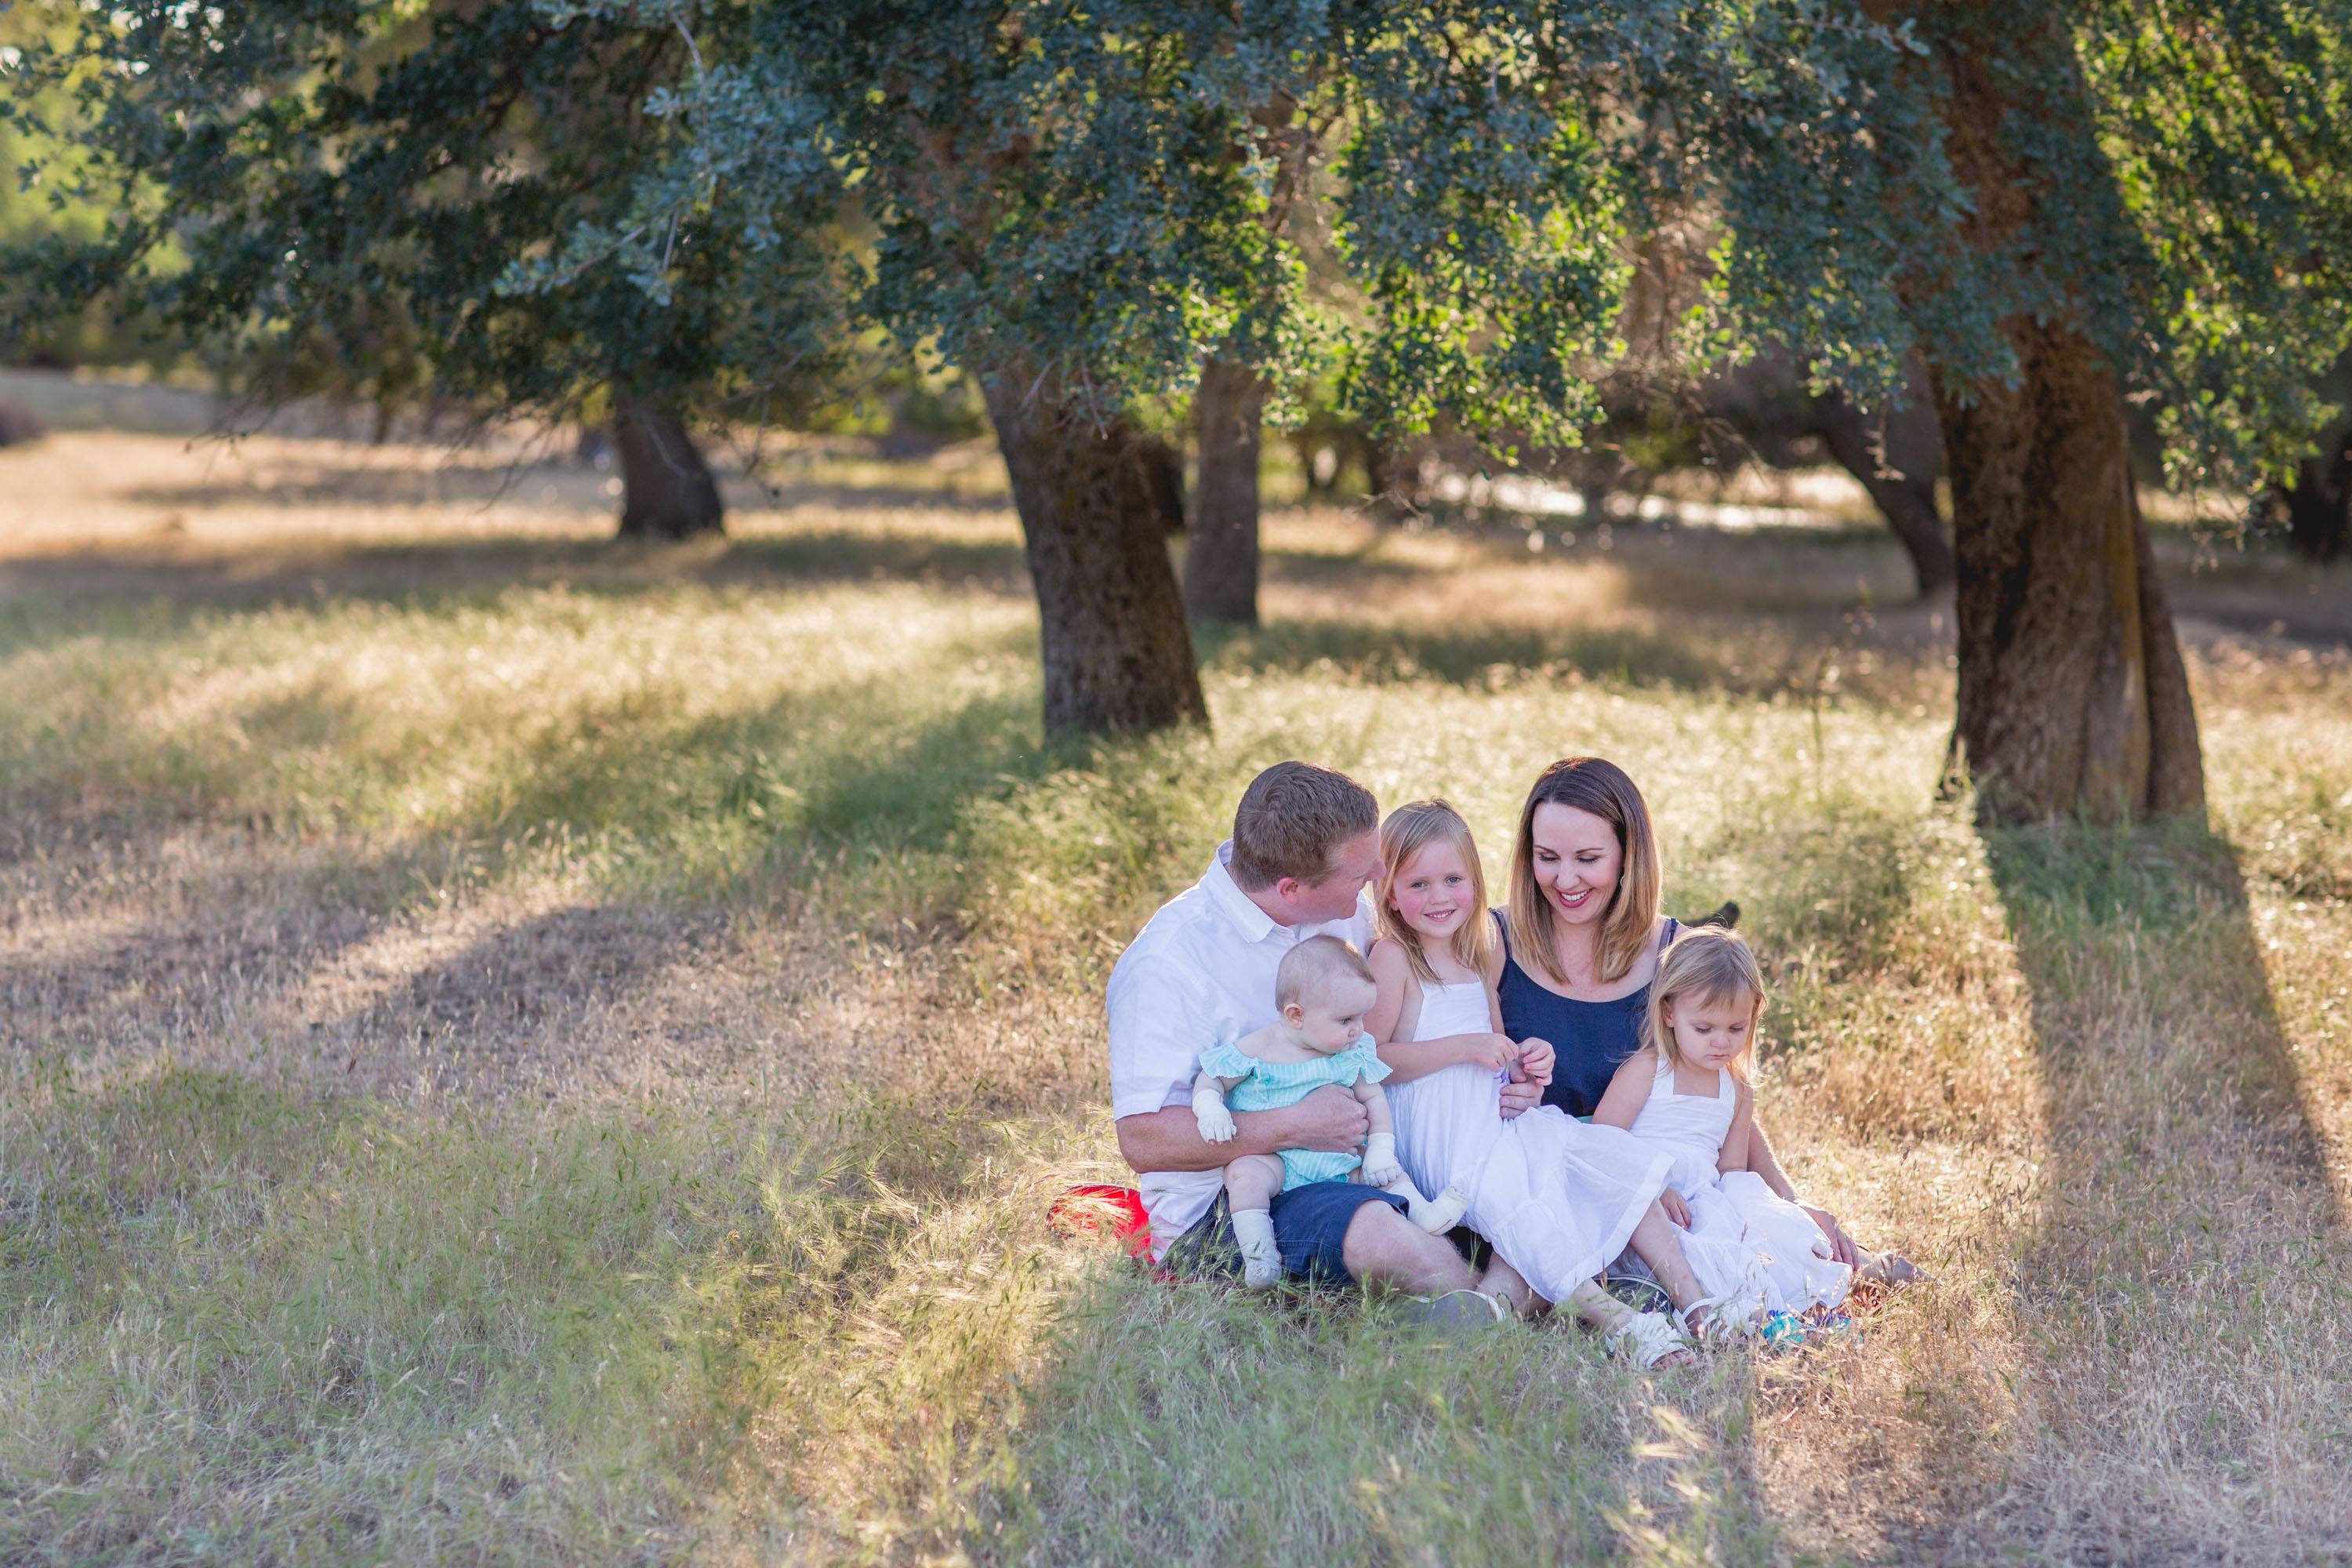 View More: http://katieellisphotography.pass.us/kinklefamily